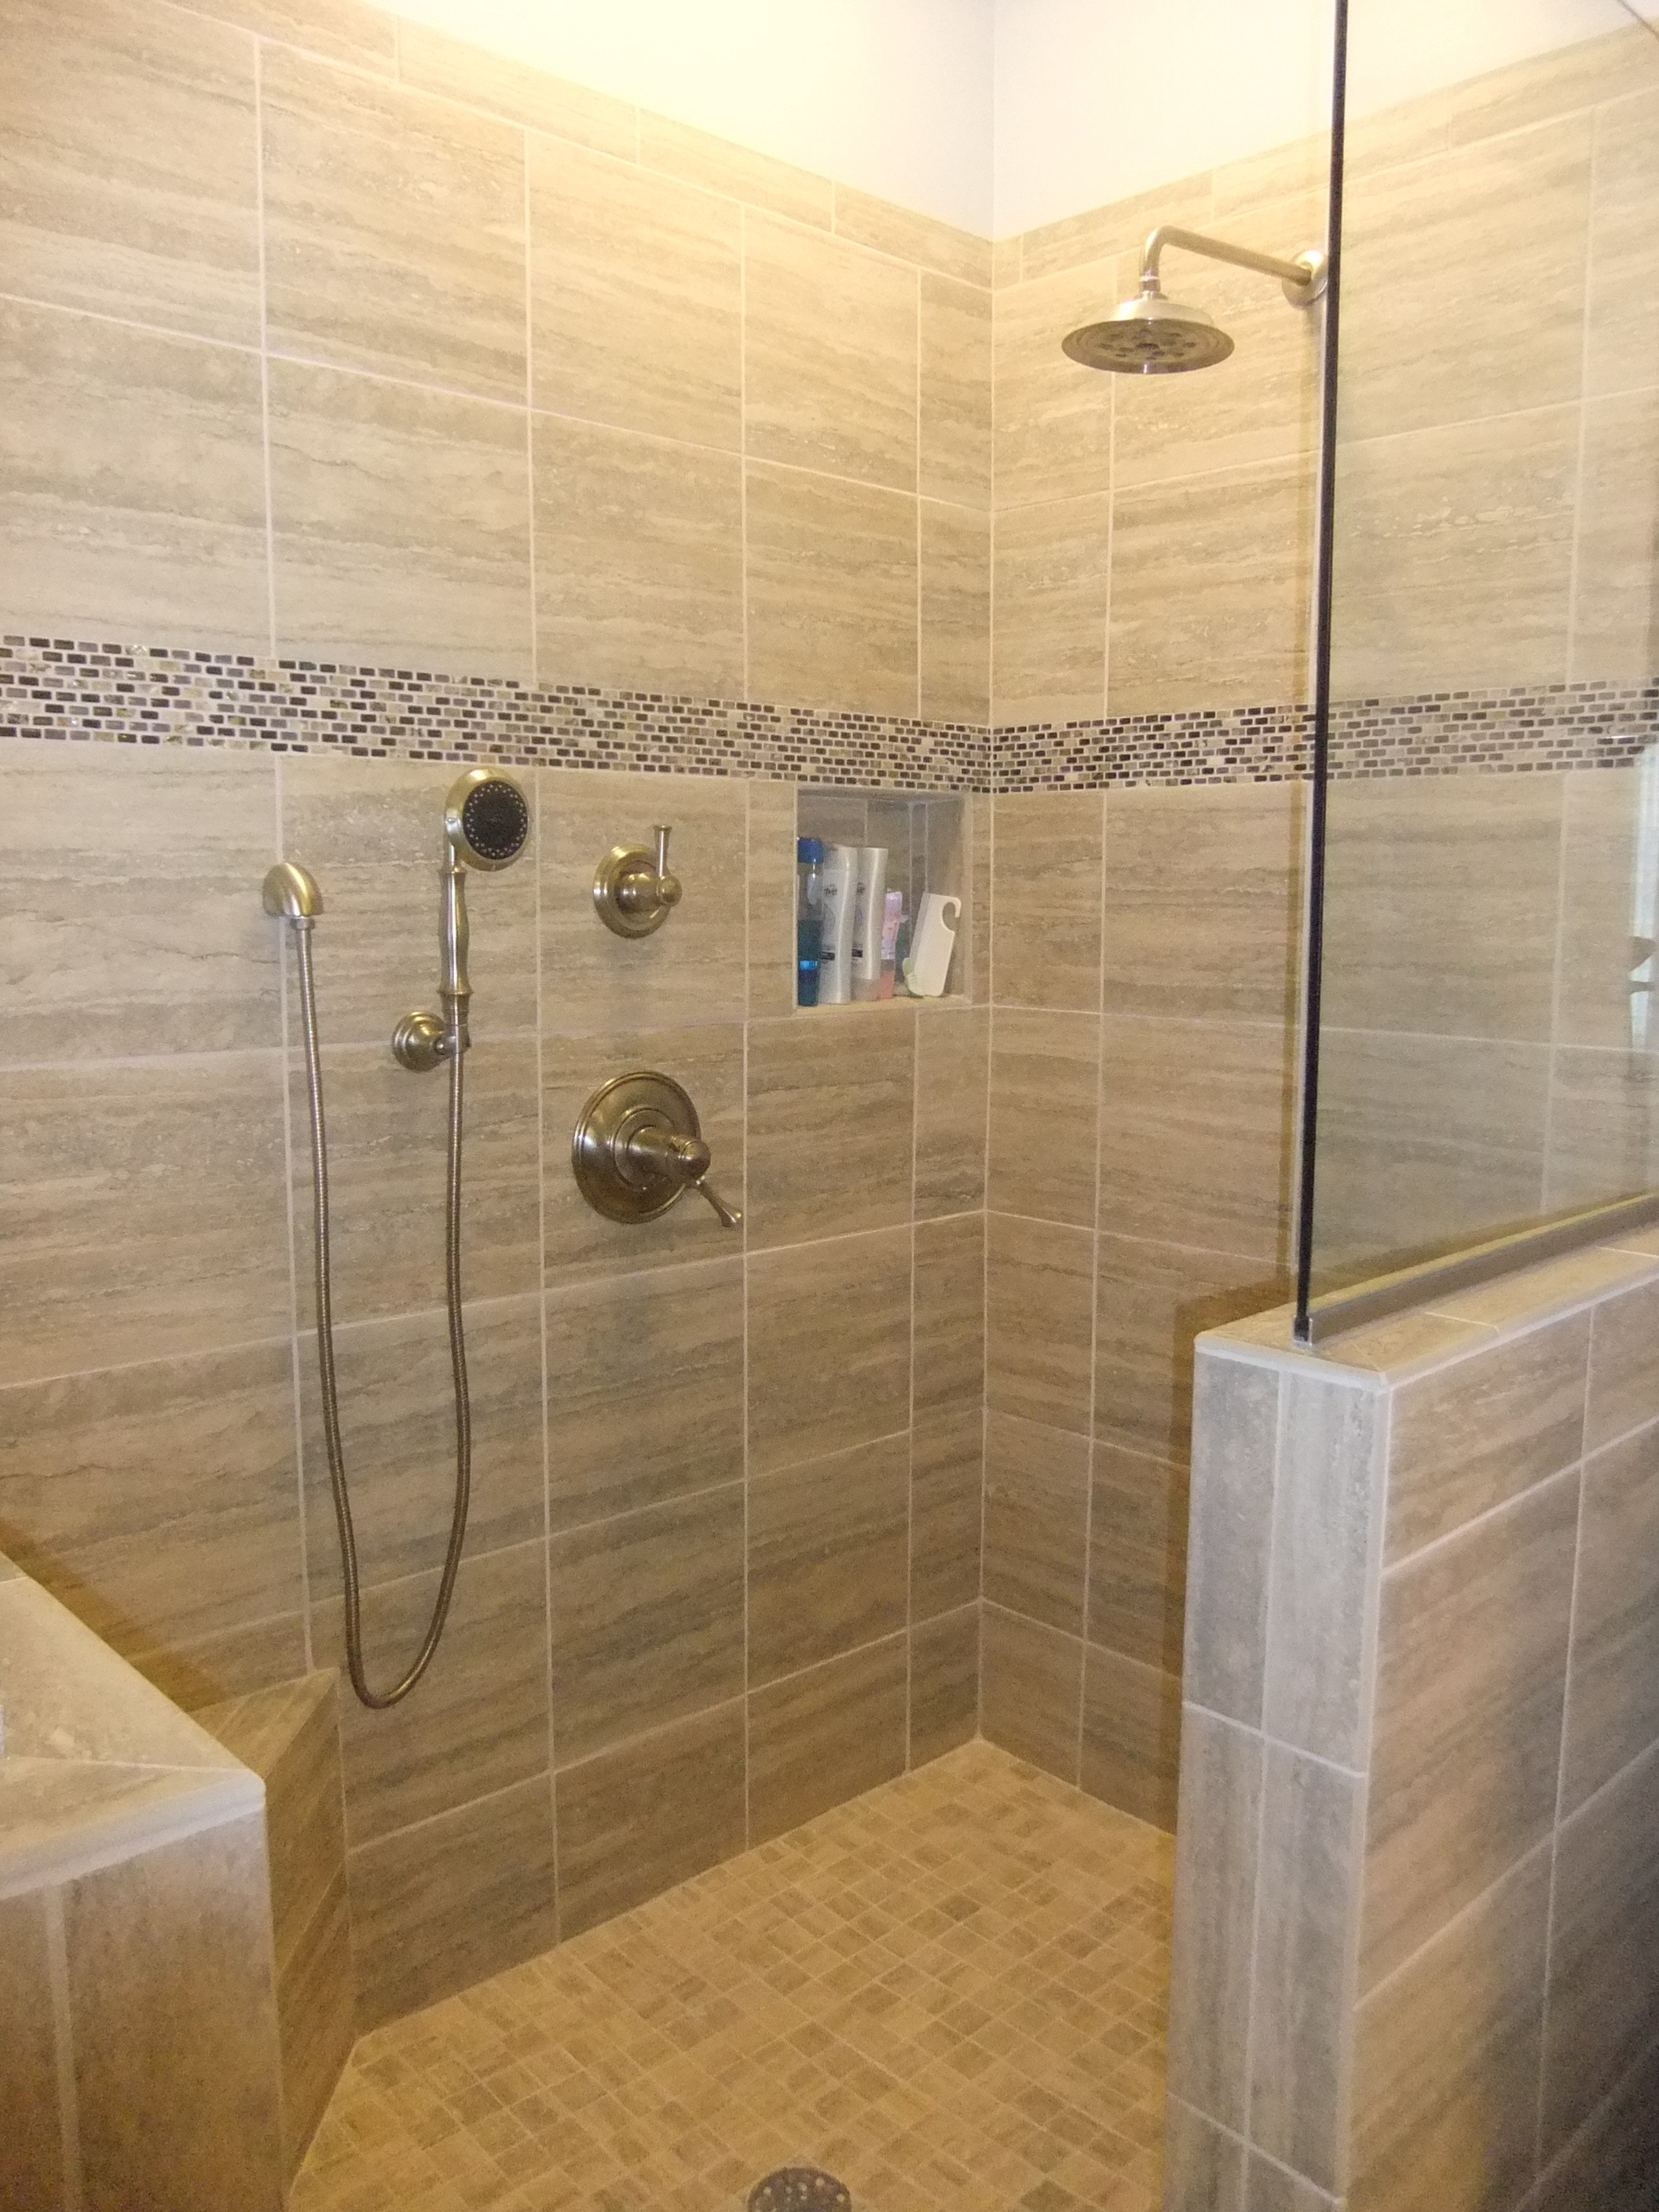 27 nice ideas and pictures of natural stone bathroom wall Walk in shower designs